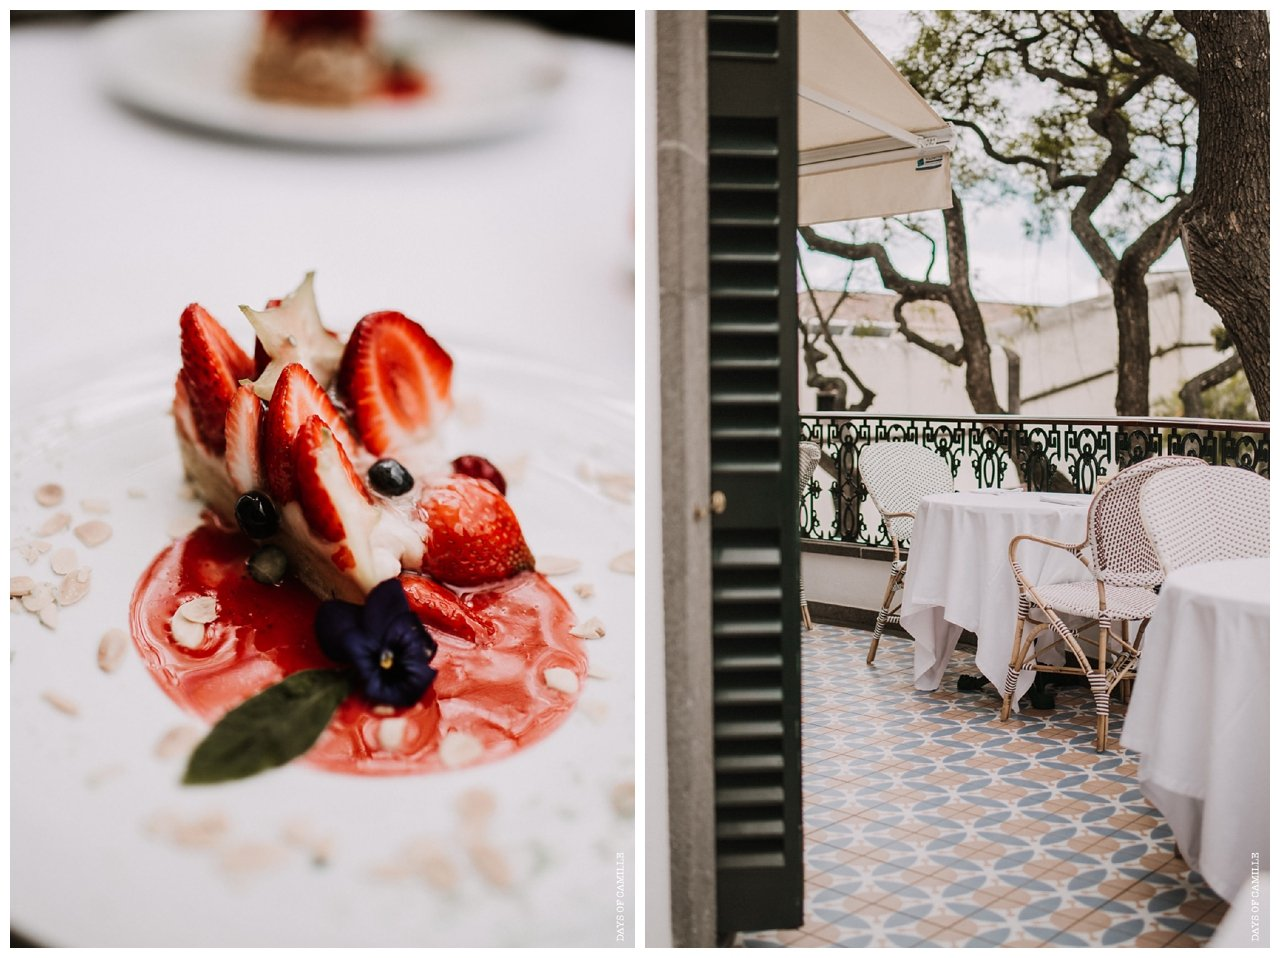 daysofcamille-voyage-madere-funchal03